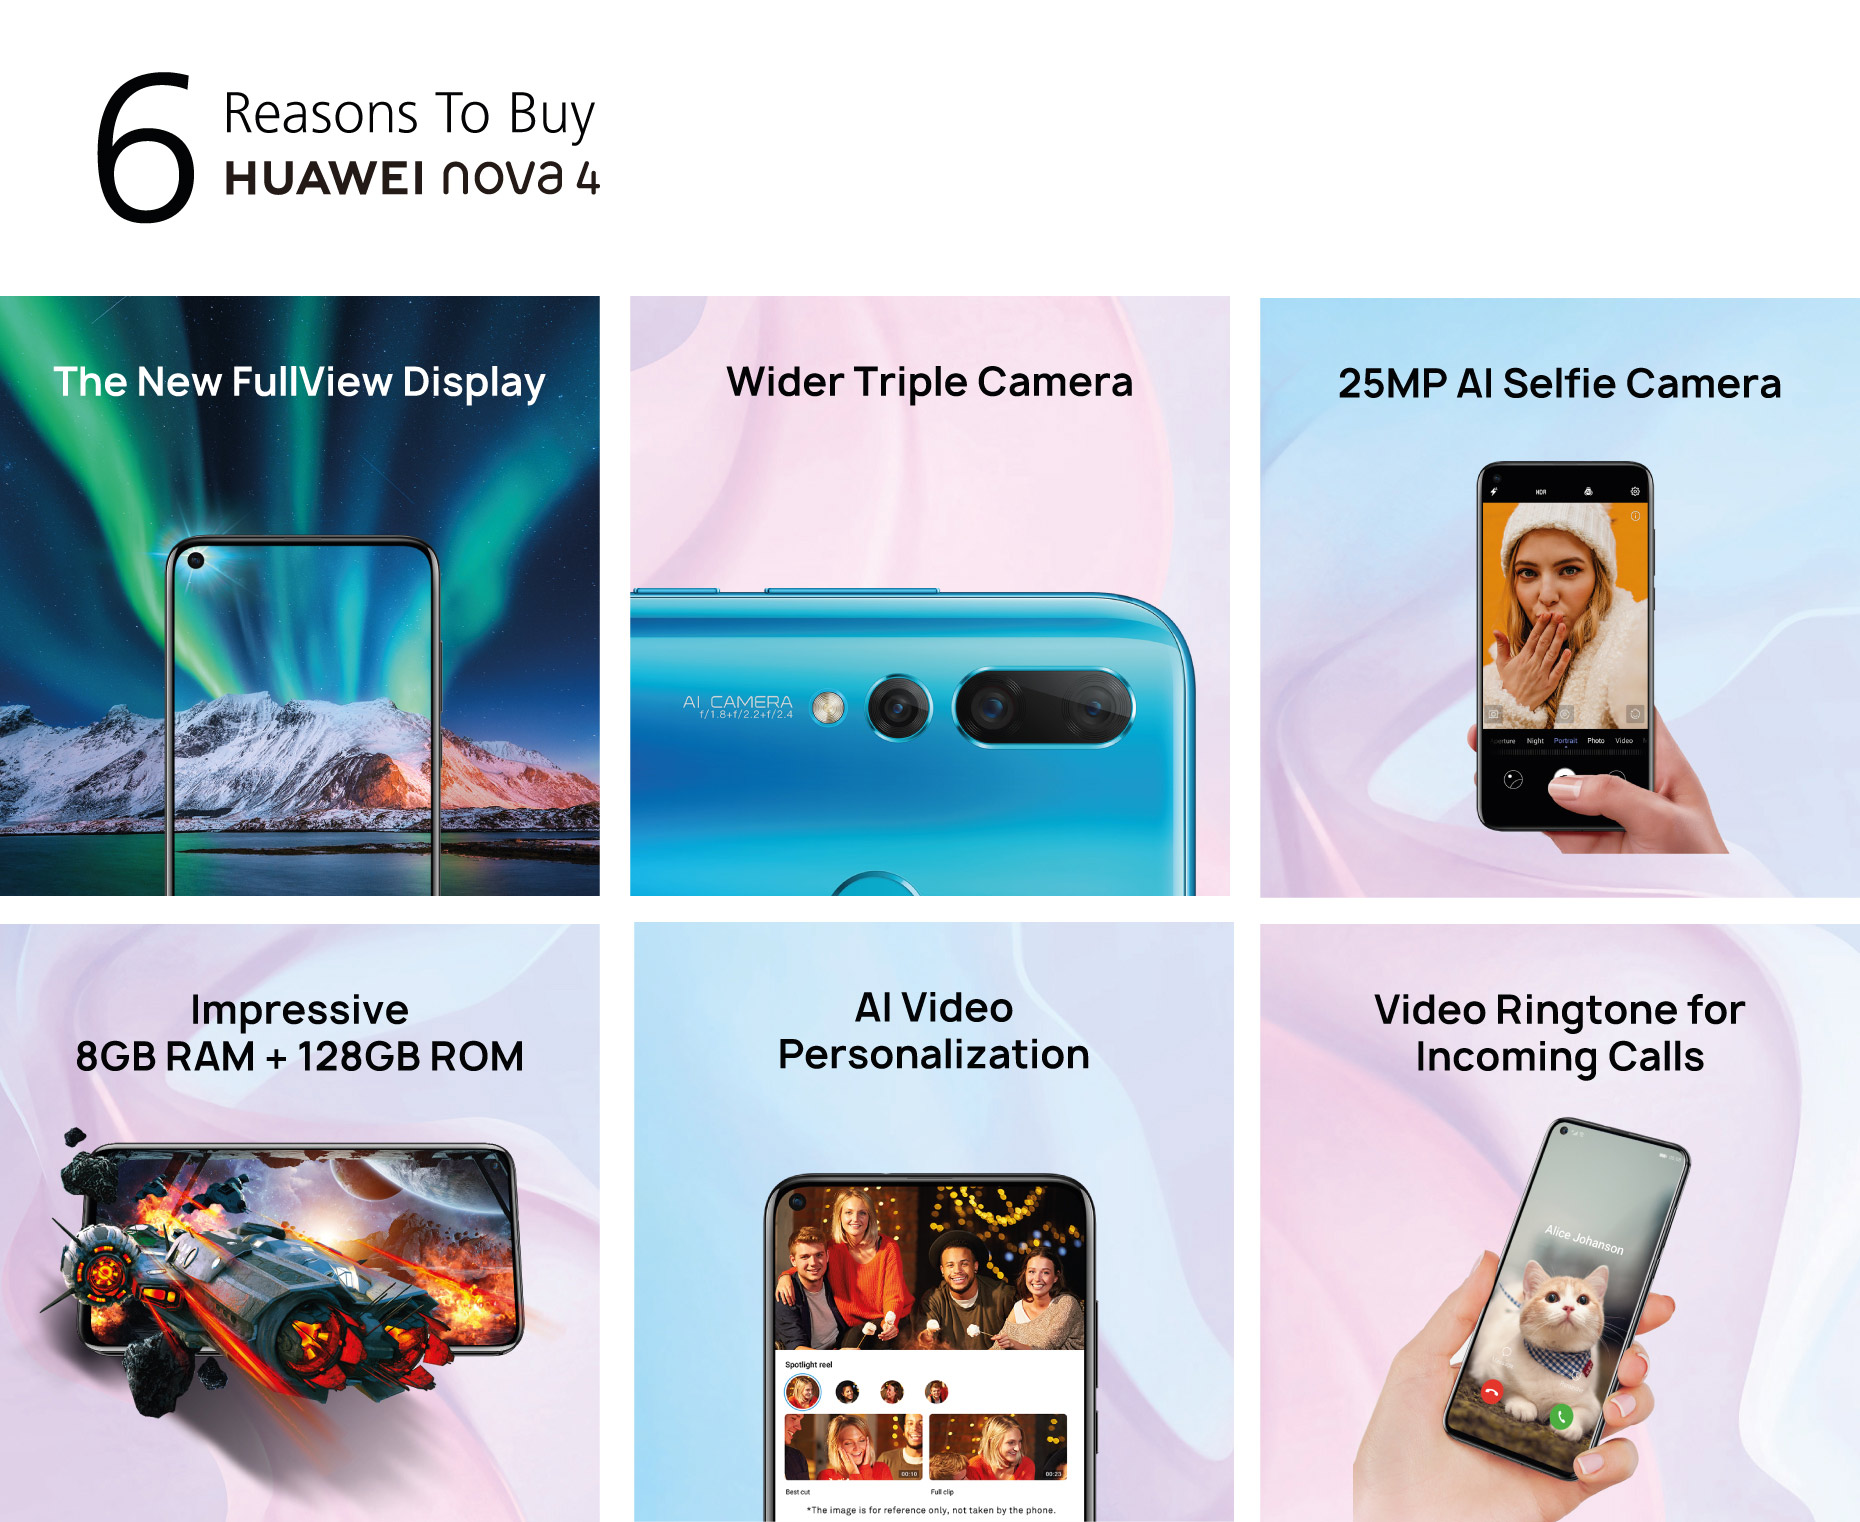 HUAWEI nova 4, The New FullView Display, 20 MP triple camera| HUAWEI UAE